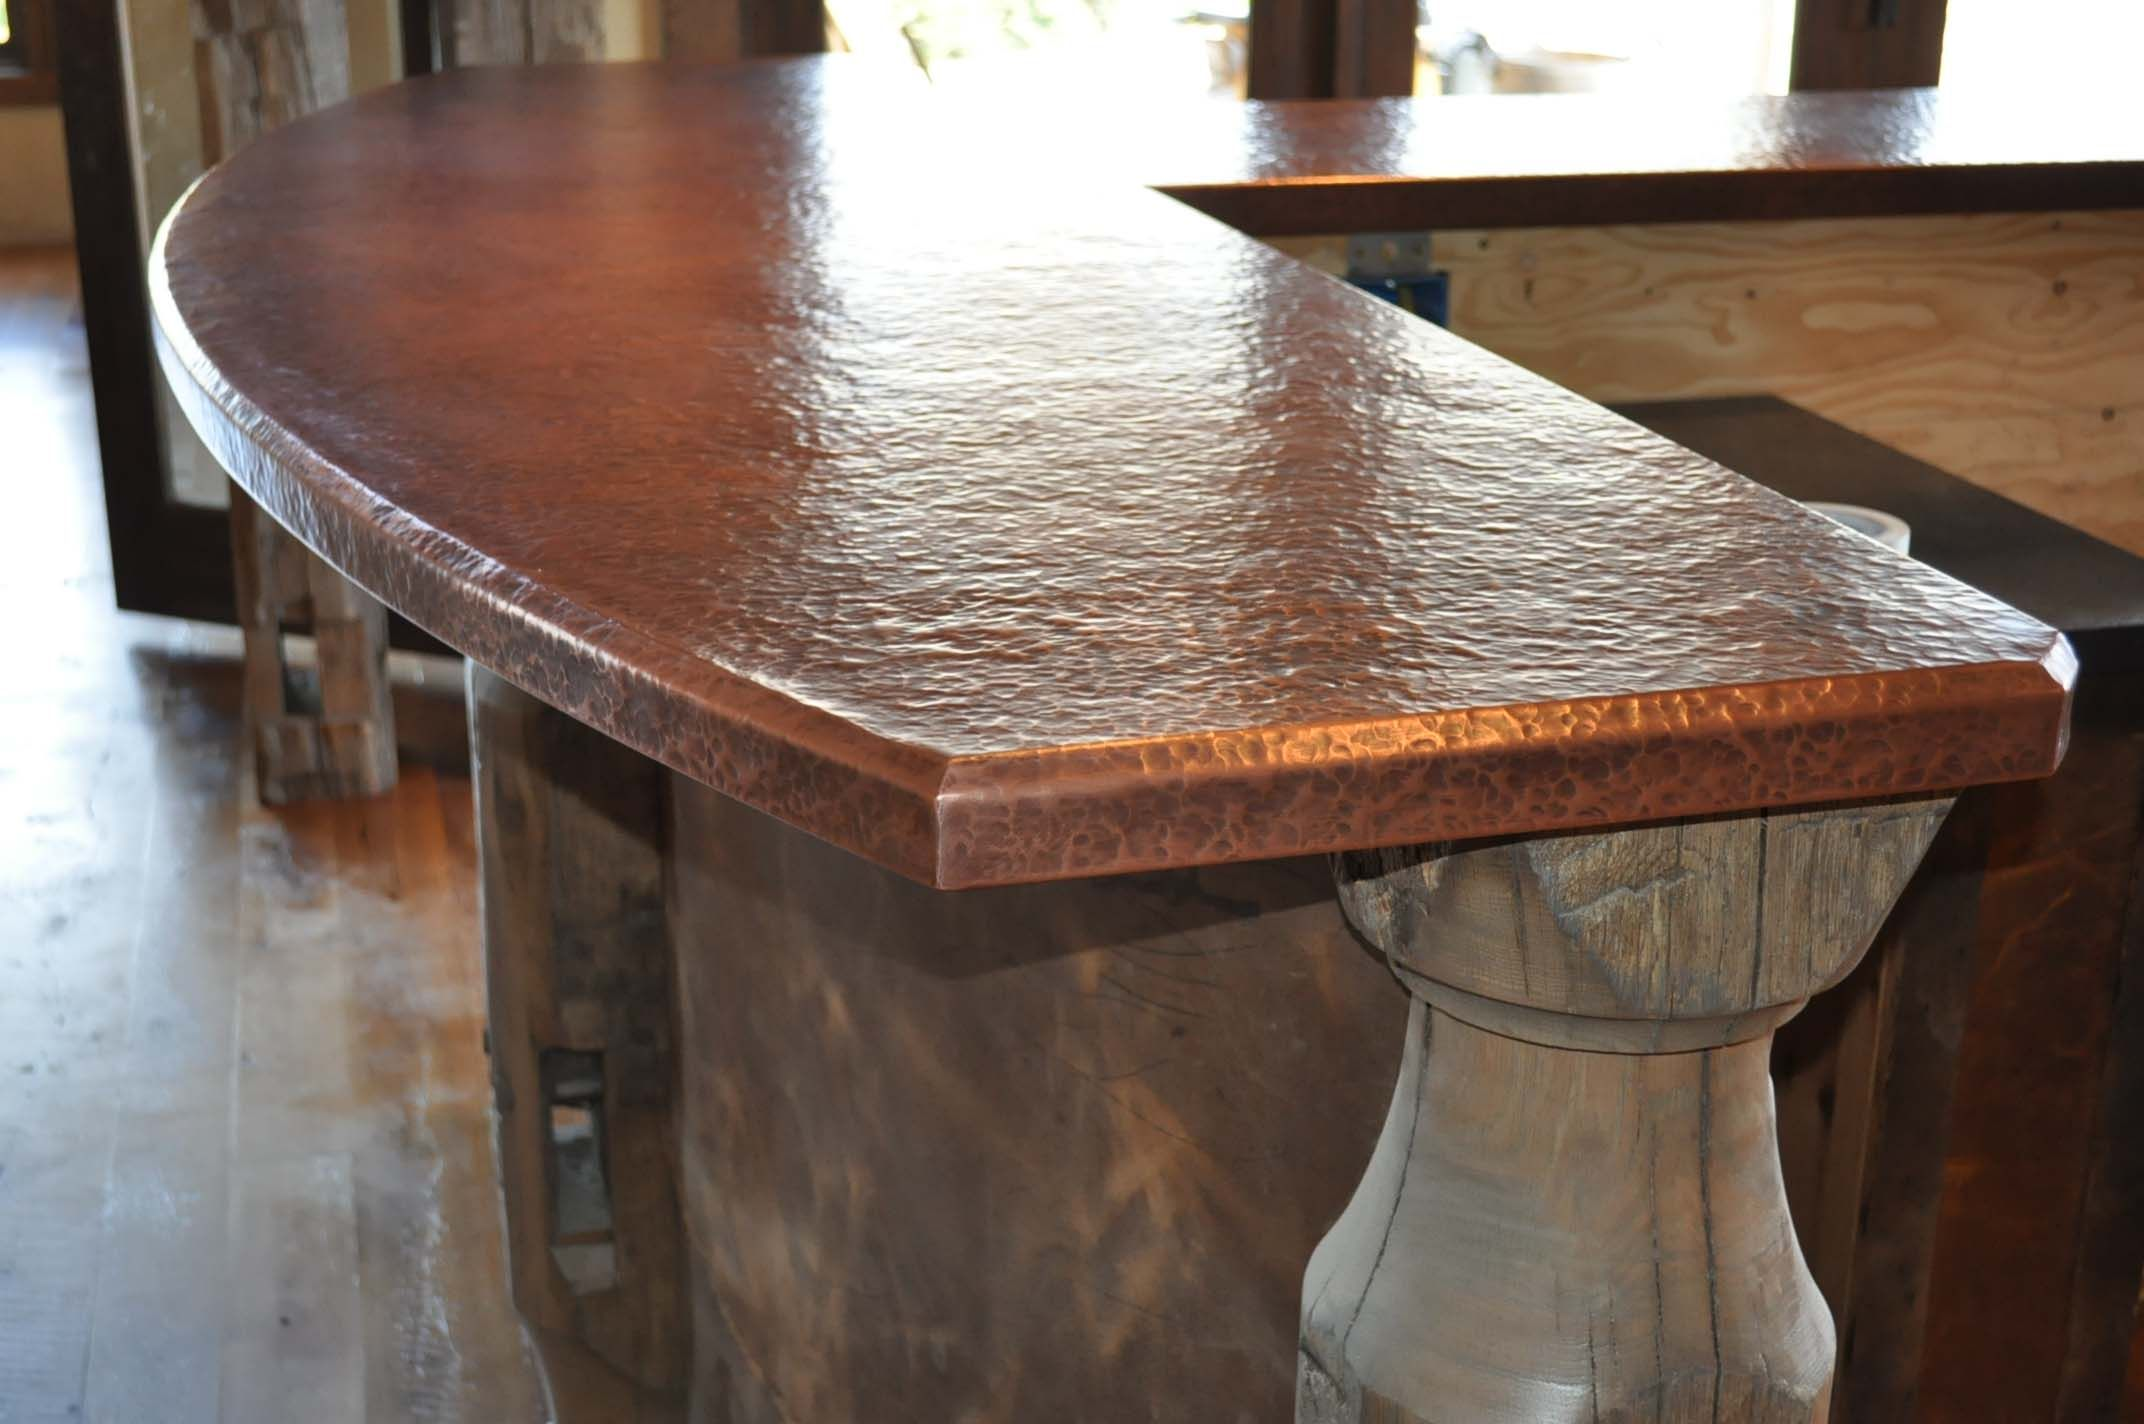 install countertops copper make projects cost penny a countertop your kitchen in